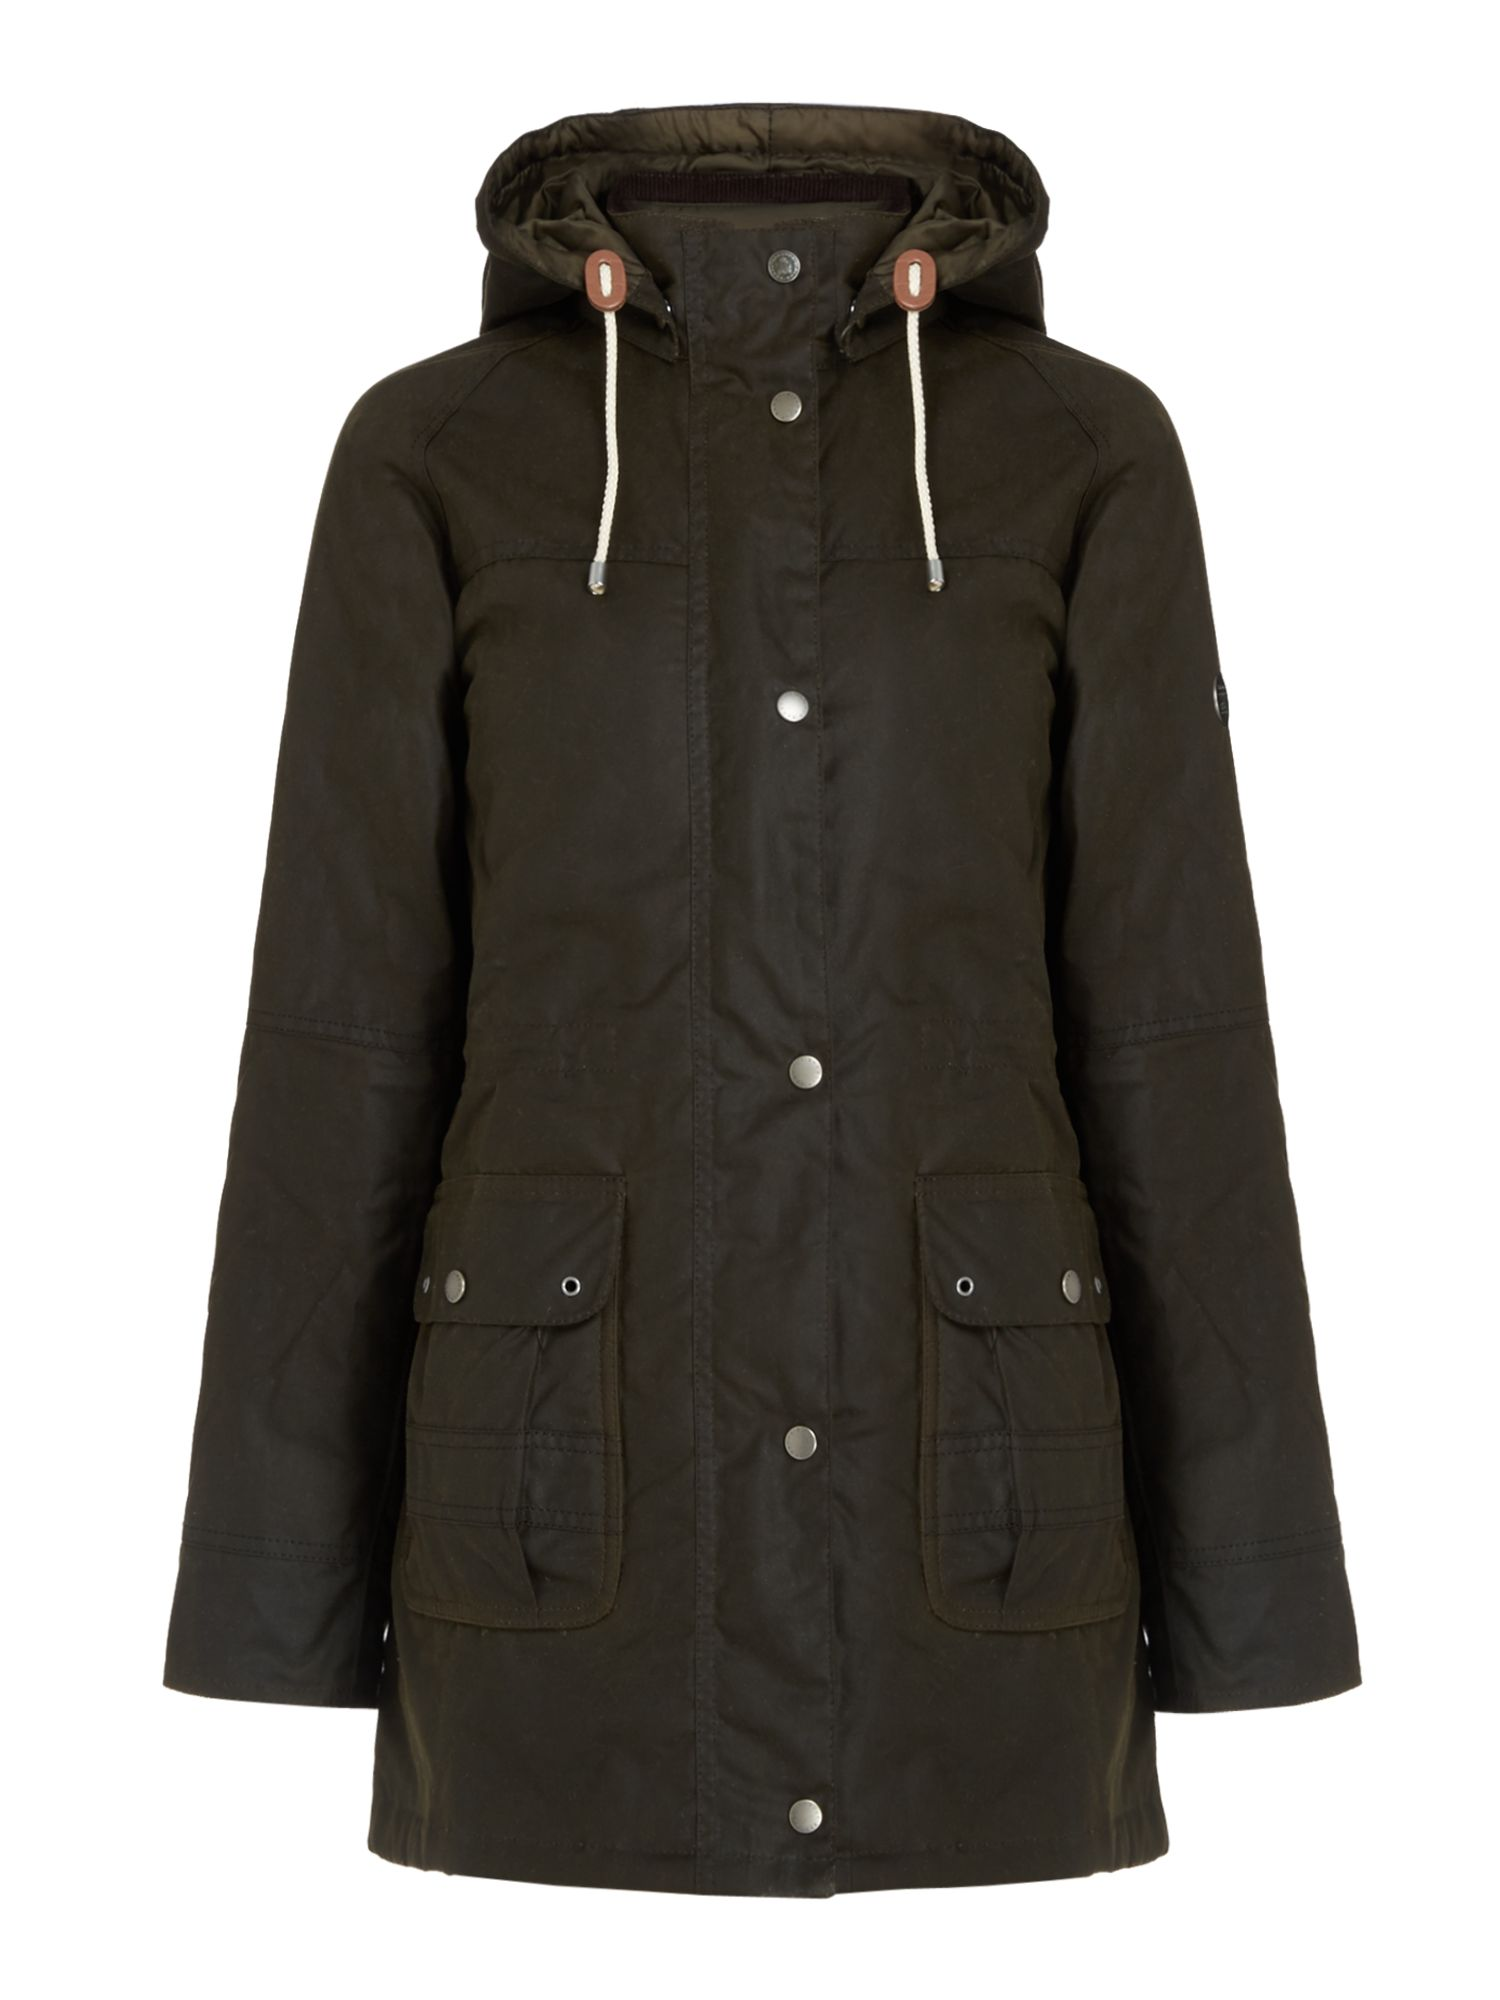 Barbour Seaton Wax Jacket, Olive